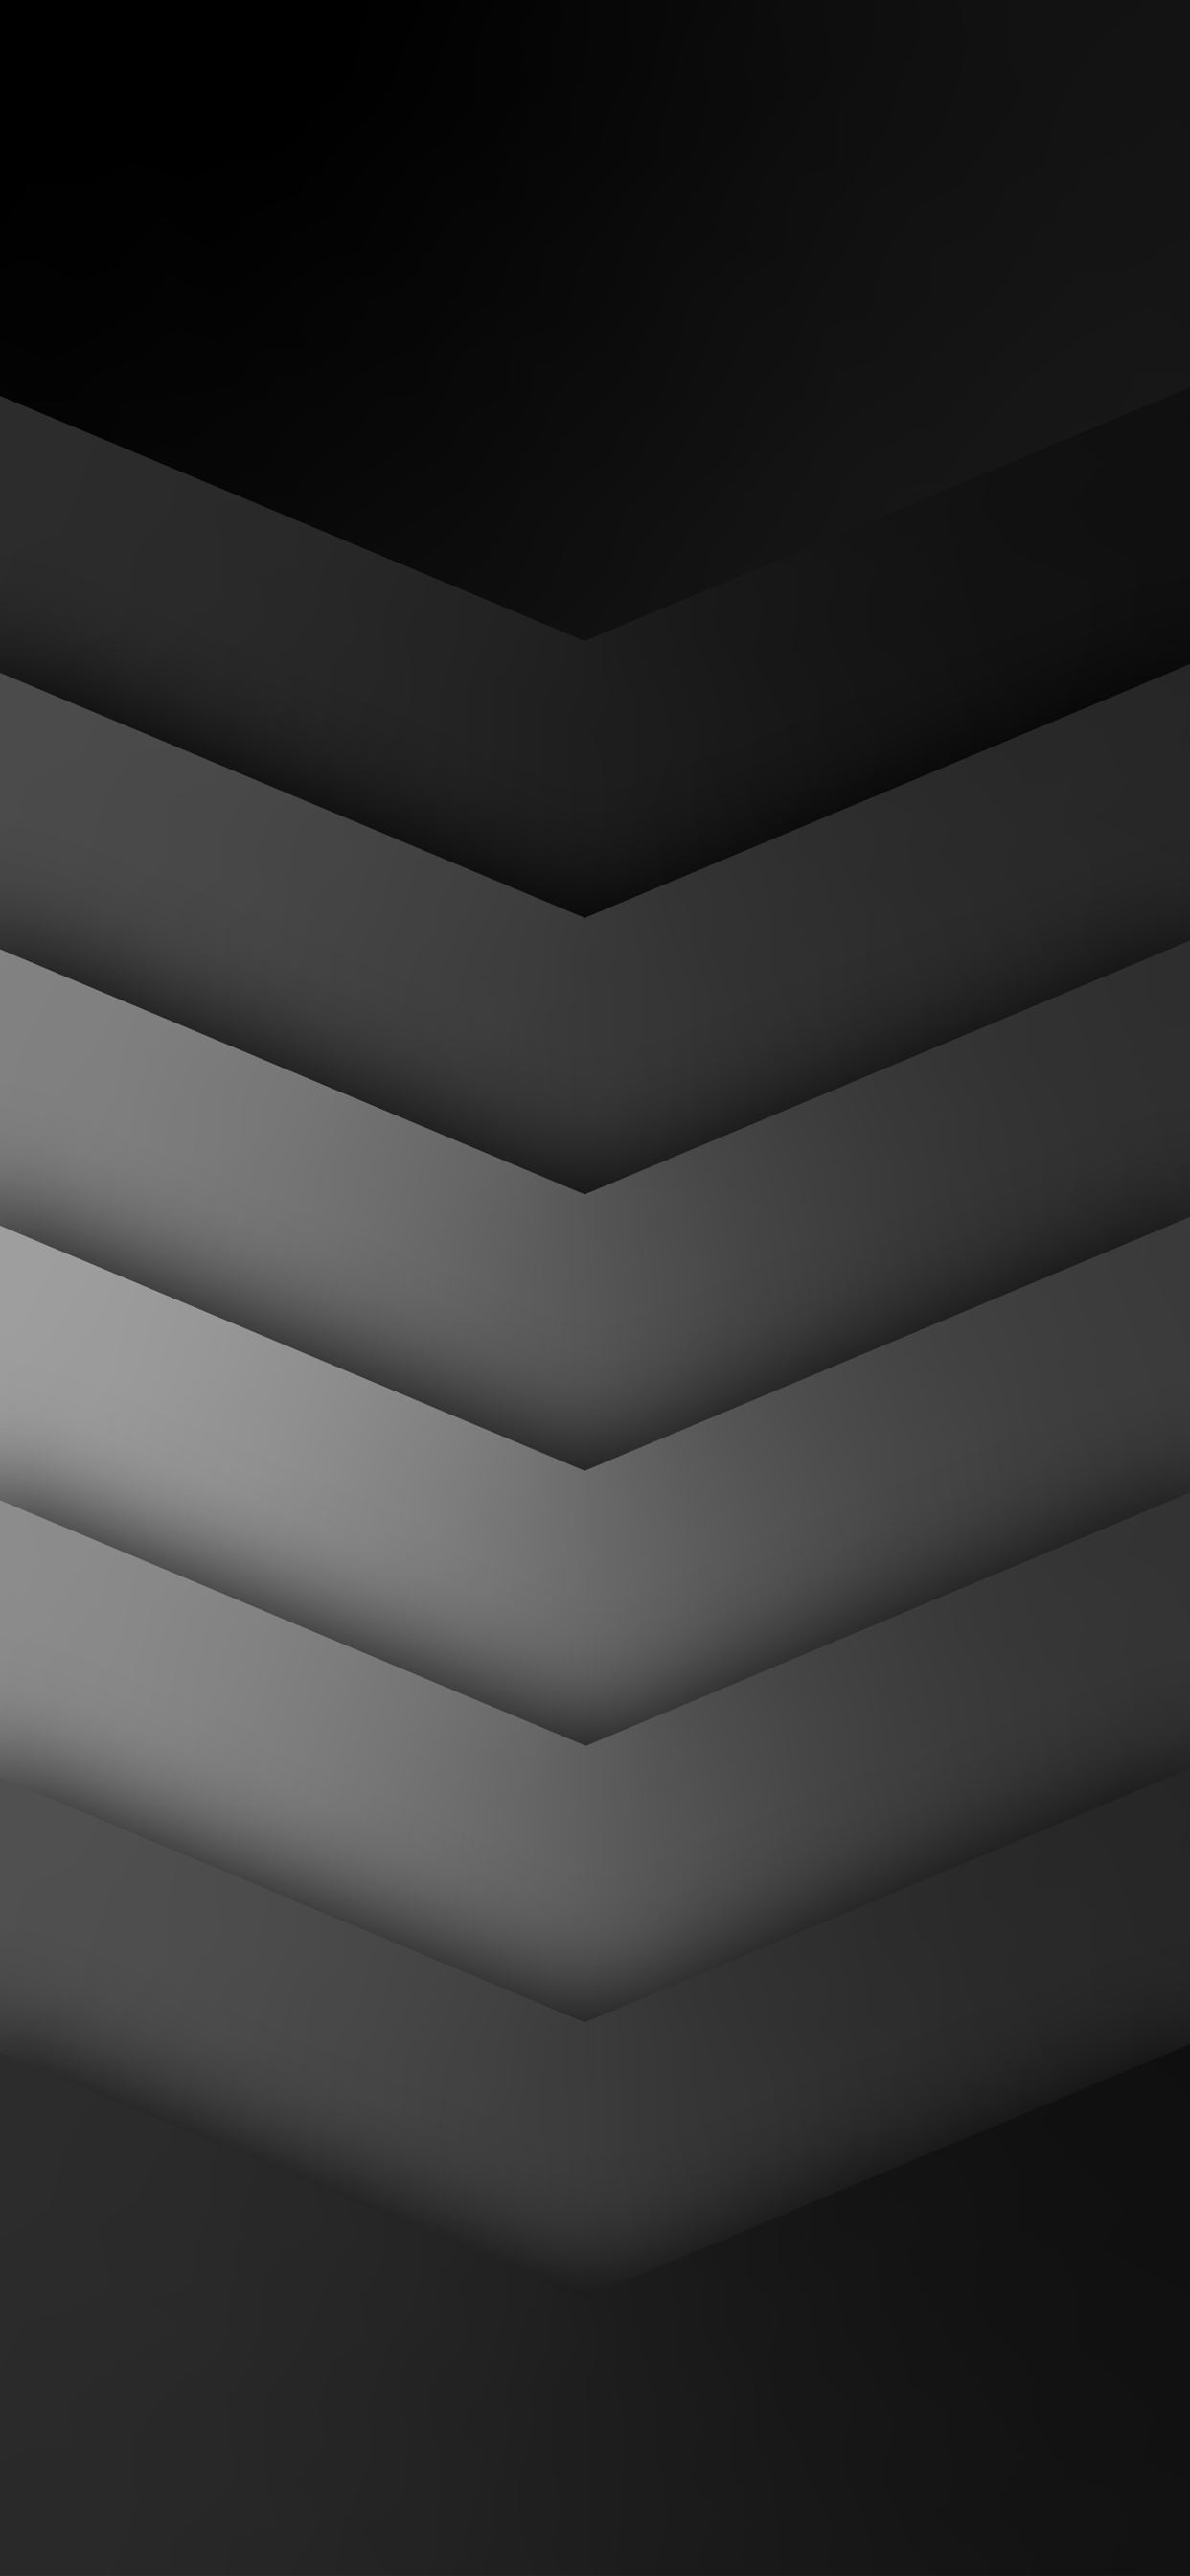 Black dark pattern iphone wallpaper arthur schrinemacher